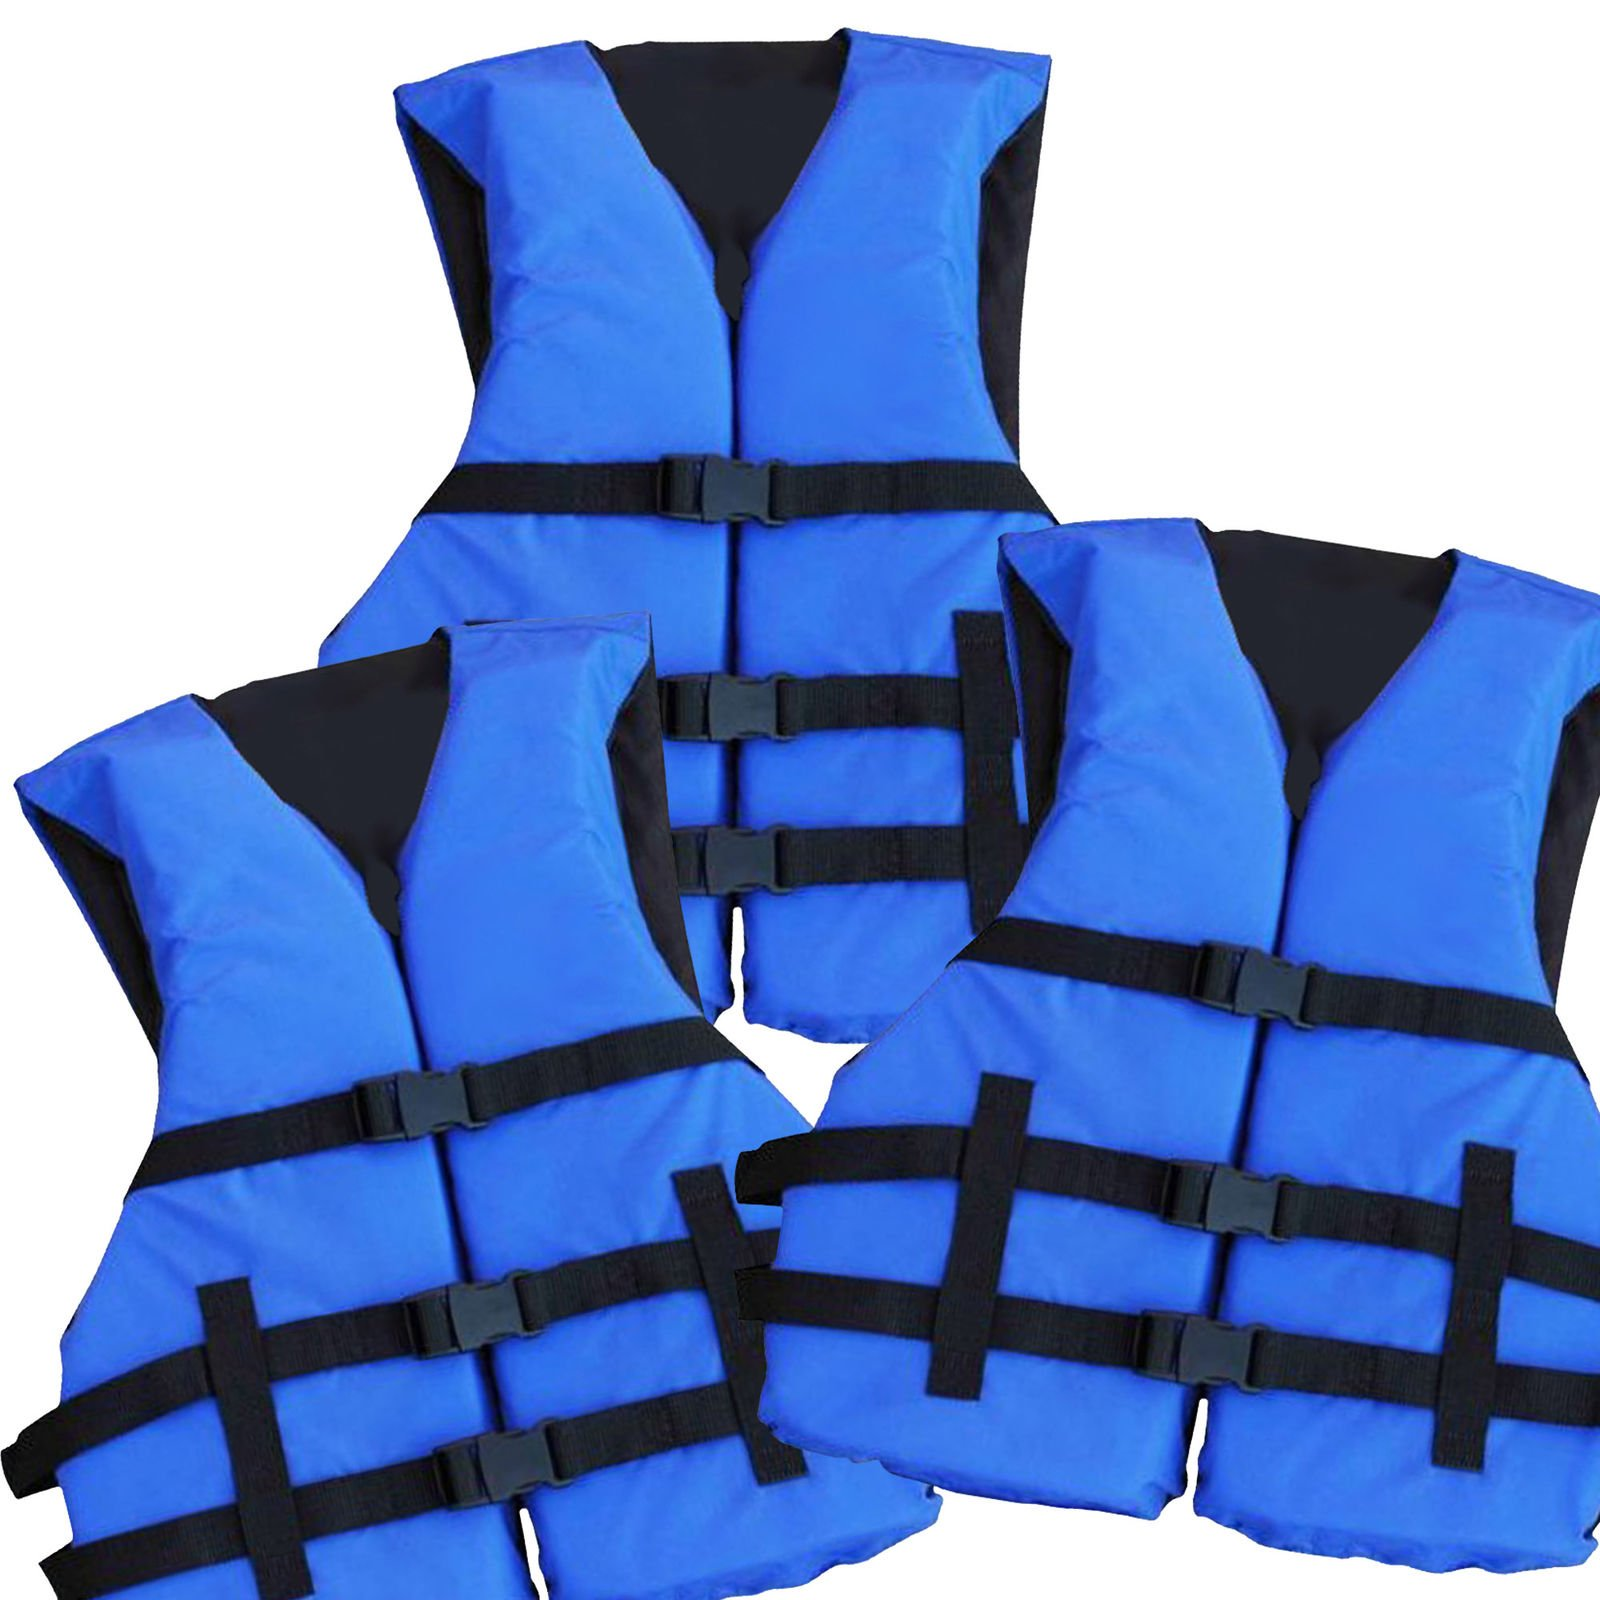 Hardcore Water Sports 3 Pack Adult Life Jacket PFD USCG Type III Universal Boating Ski Vest New by Hardcore Water Sports